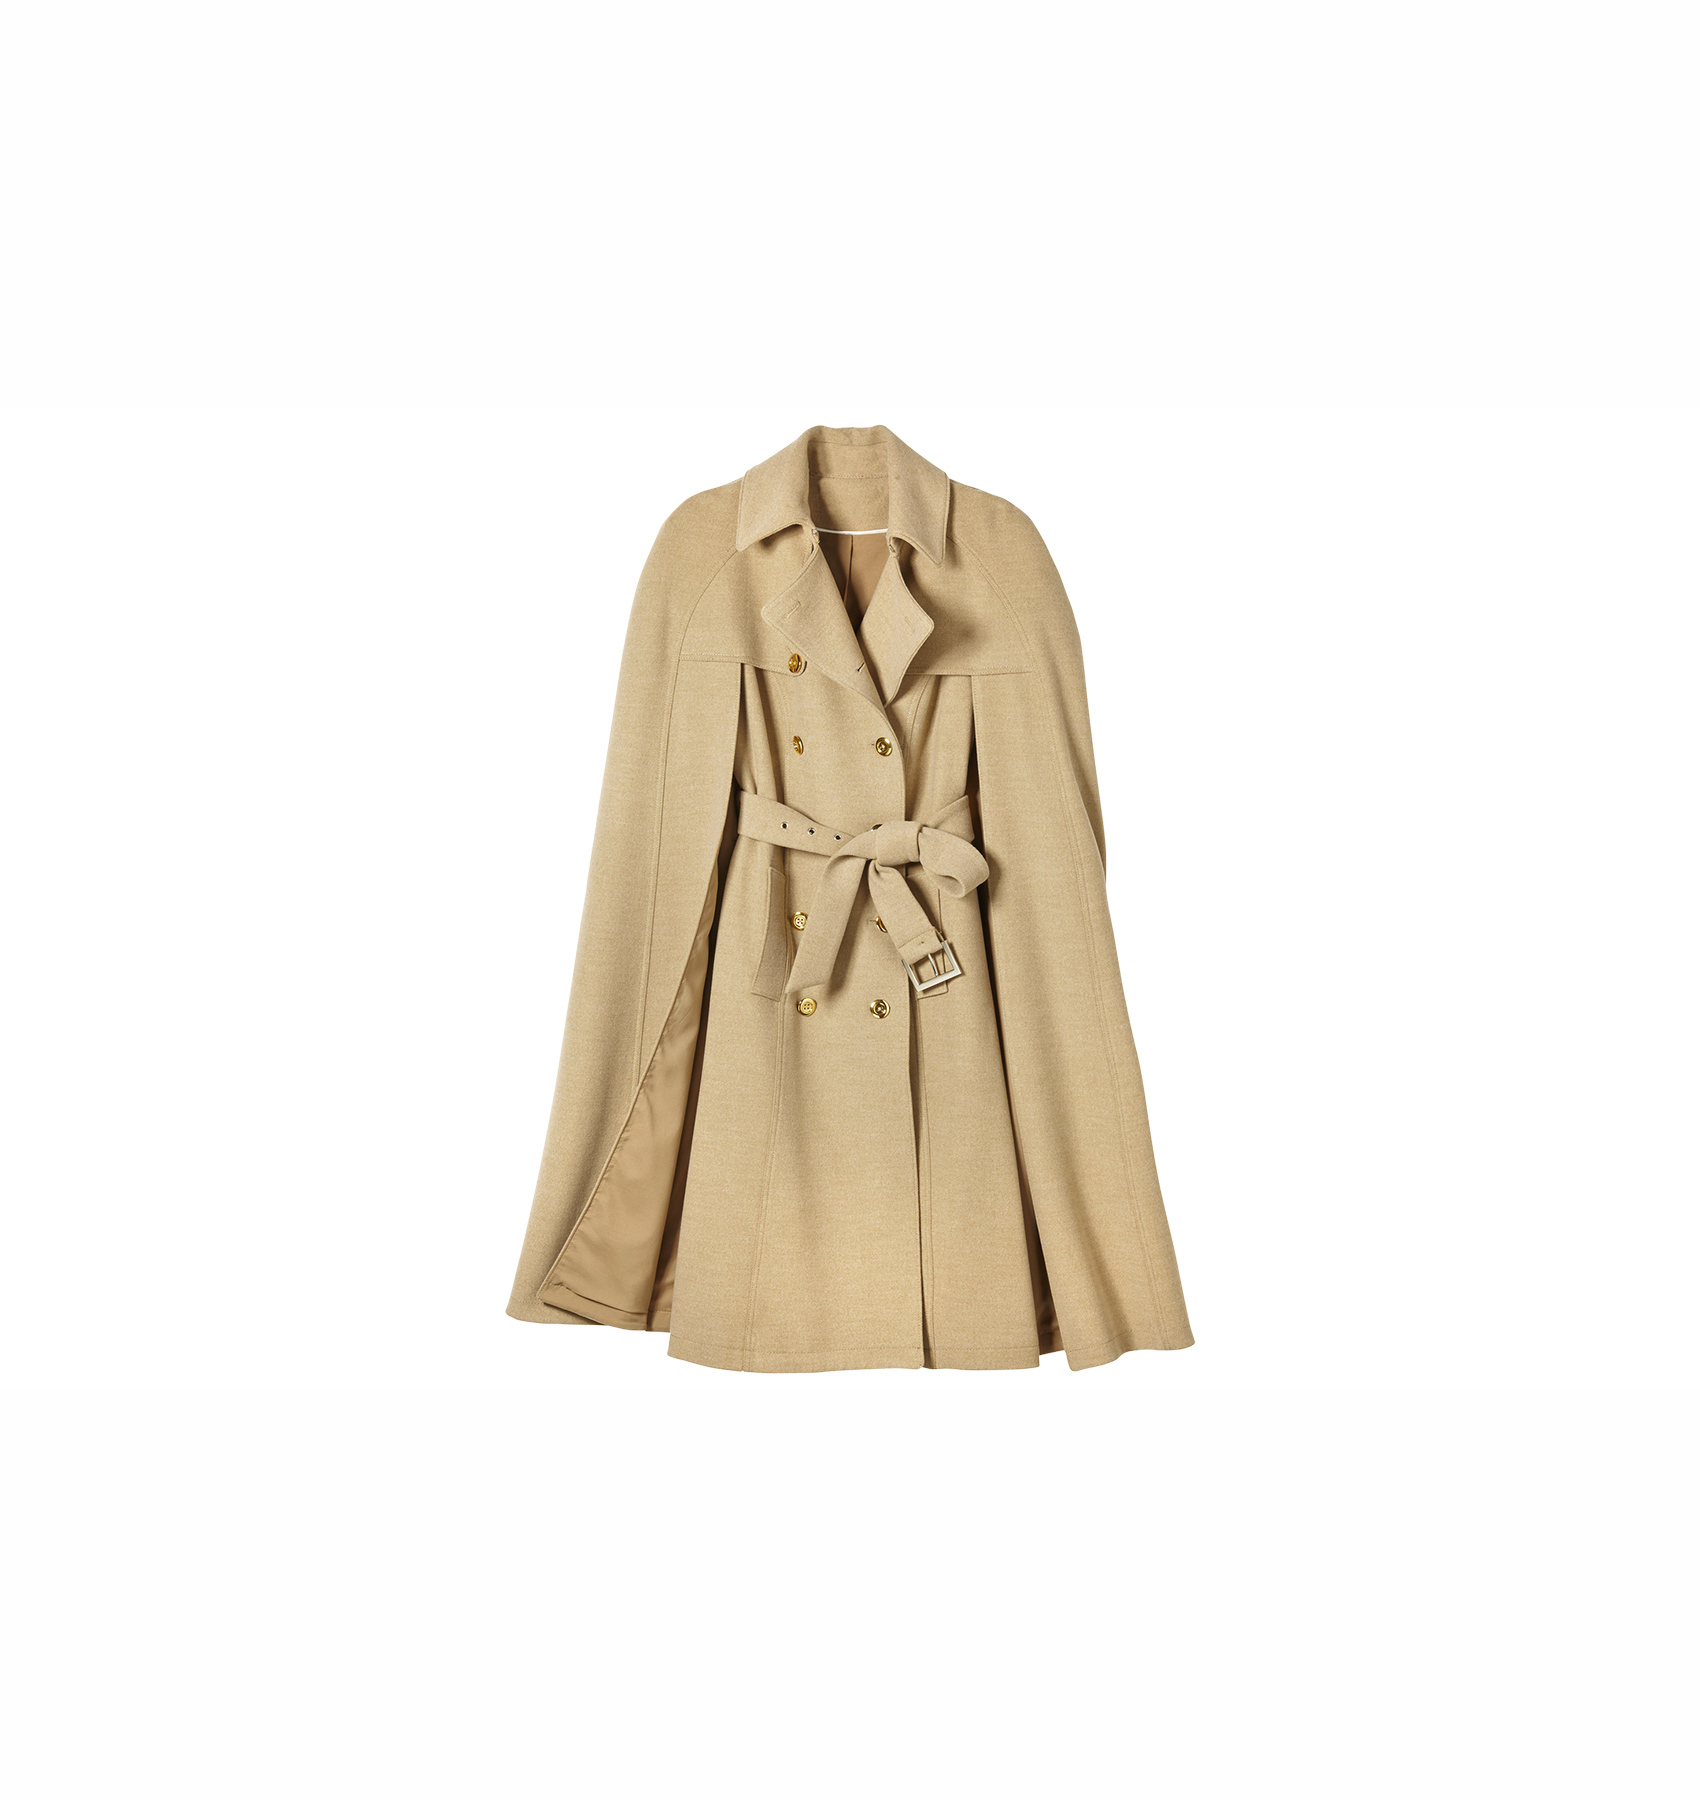 Coats | Real Simple